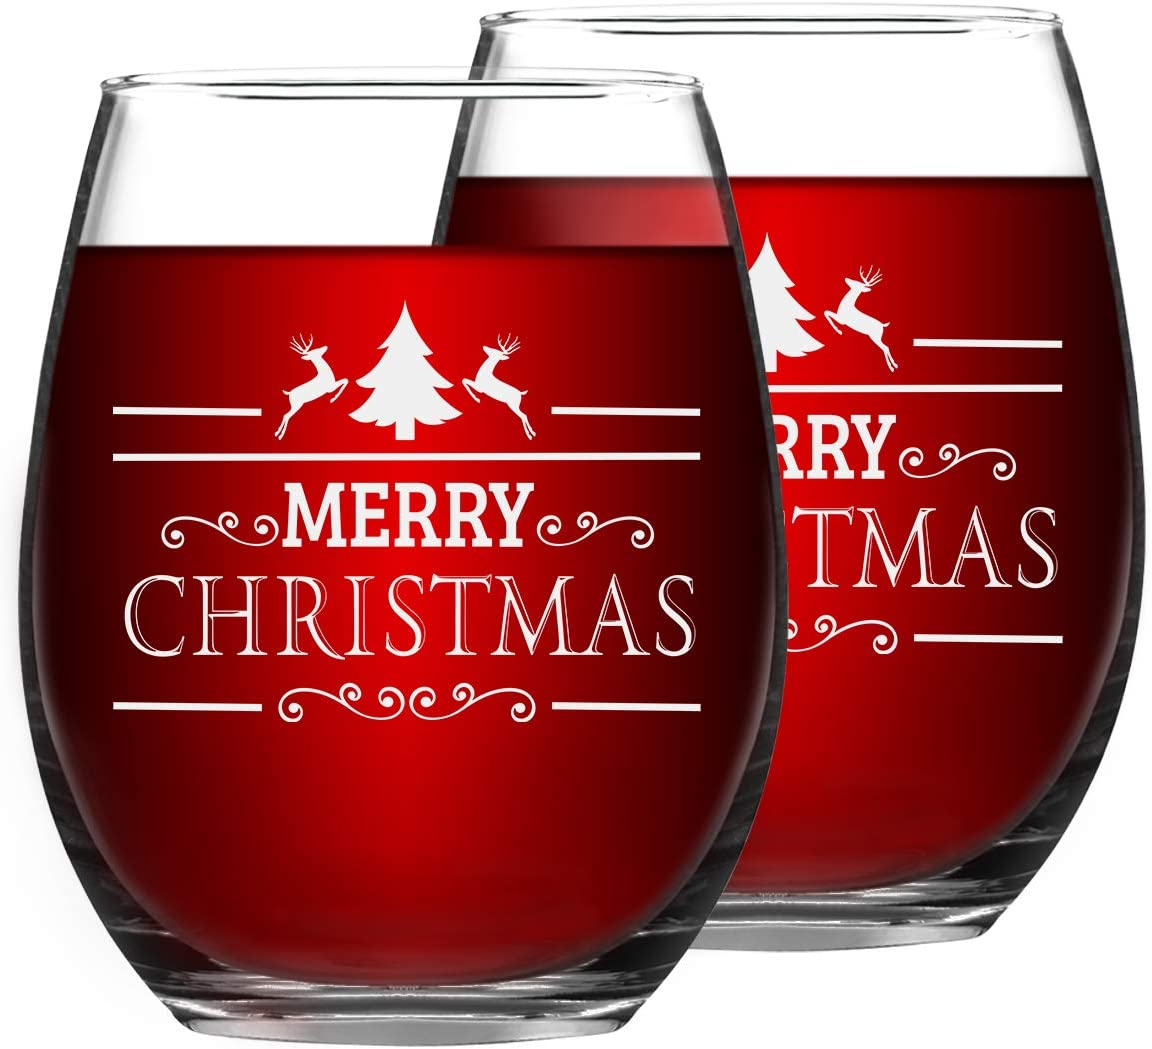 Set of 2 Christmas Wine Glasses Merry Christmas Stemless Wine Glasses Christmas New Year Gifts for Friends Women Christmas Decoration Wine Glasses for Christmas Party Couple Party Use 15Oz